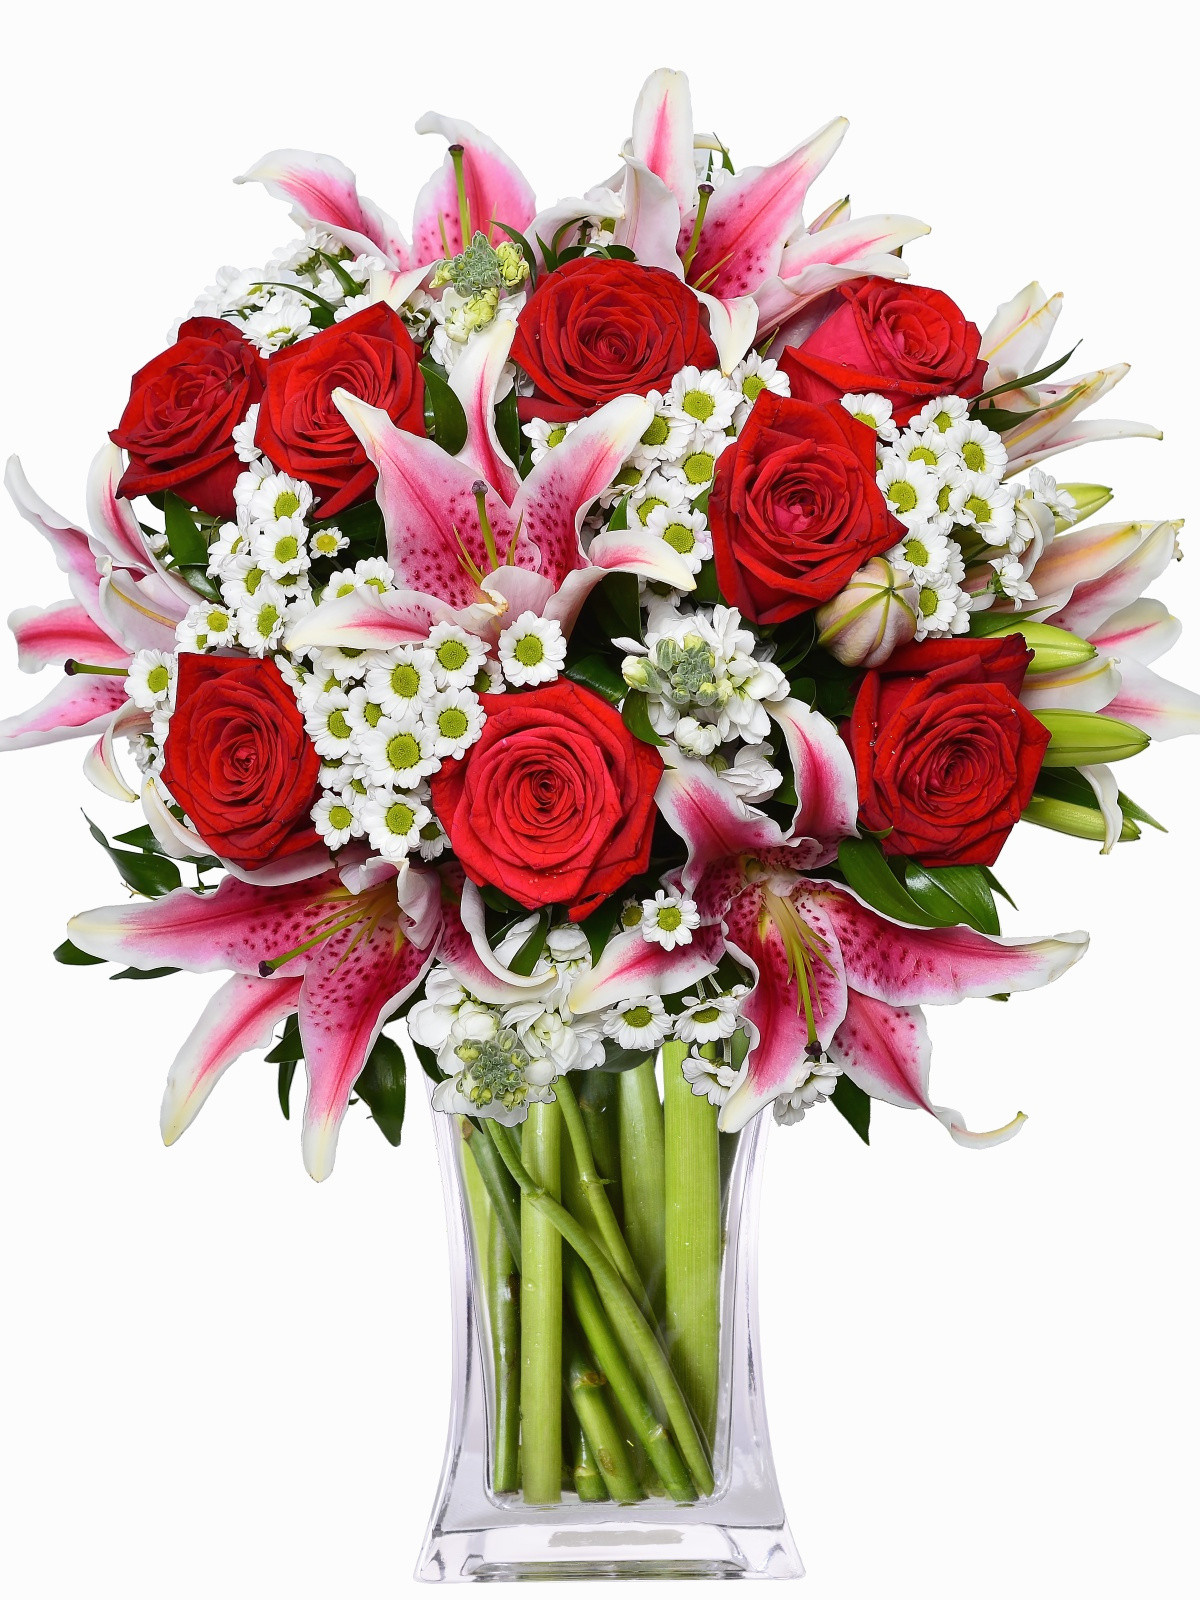 Send Flowers Delivery New 5 Fresh How Much Does It Cost to Send Flowers